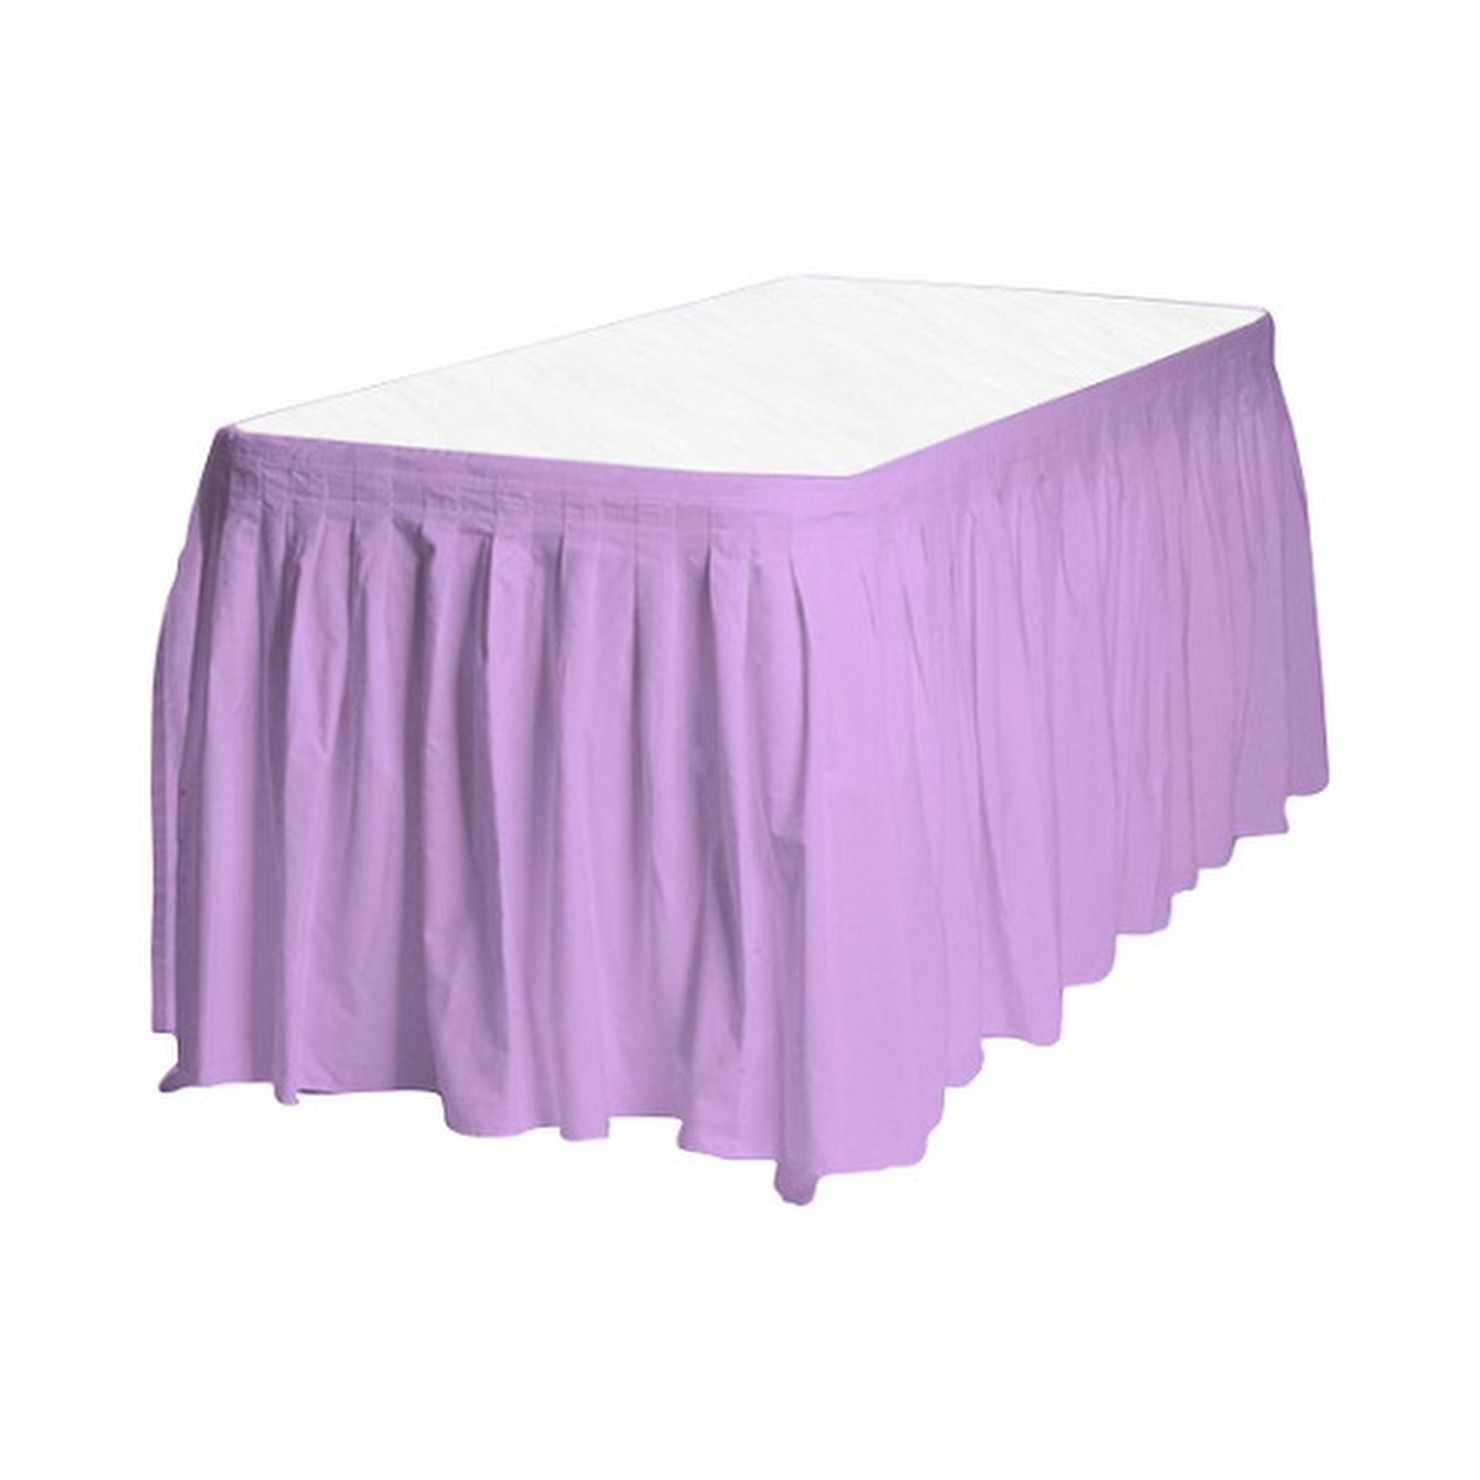 "1 Plain LAVENDER Plastic table skirt 13' x 29"" adjustable to 19' includes 6 clip"